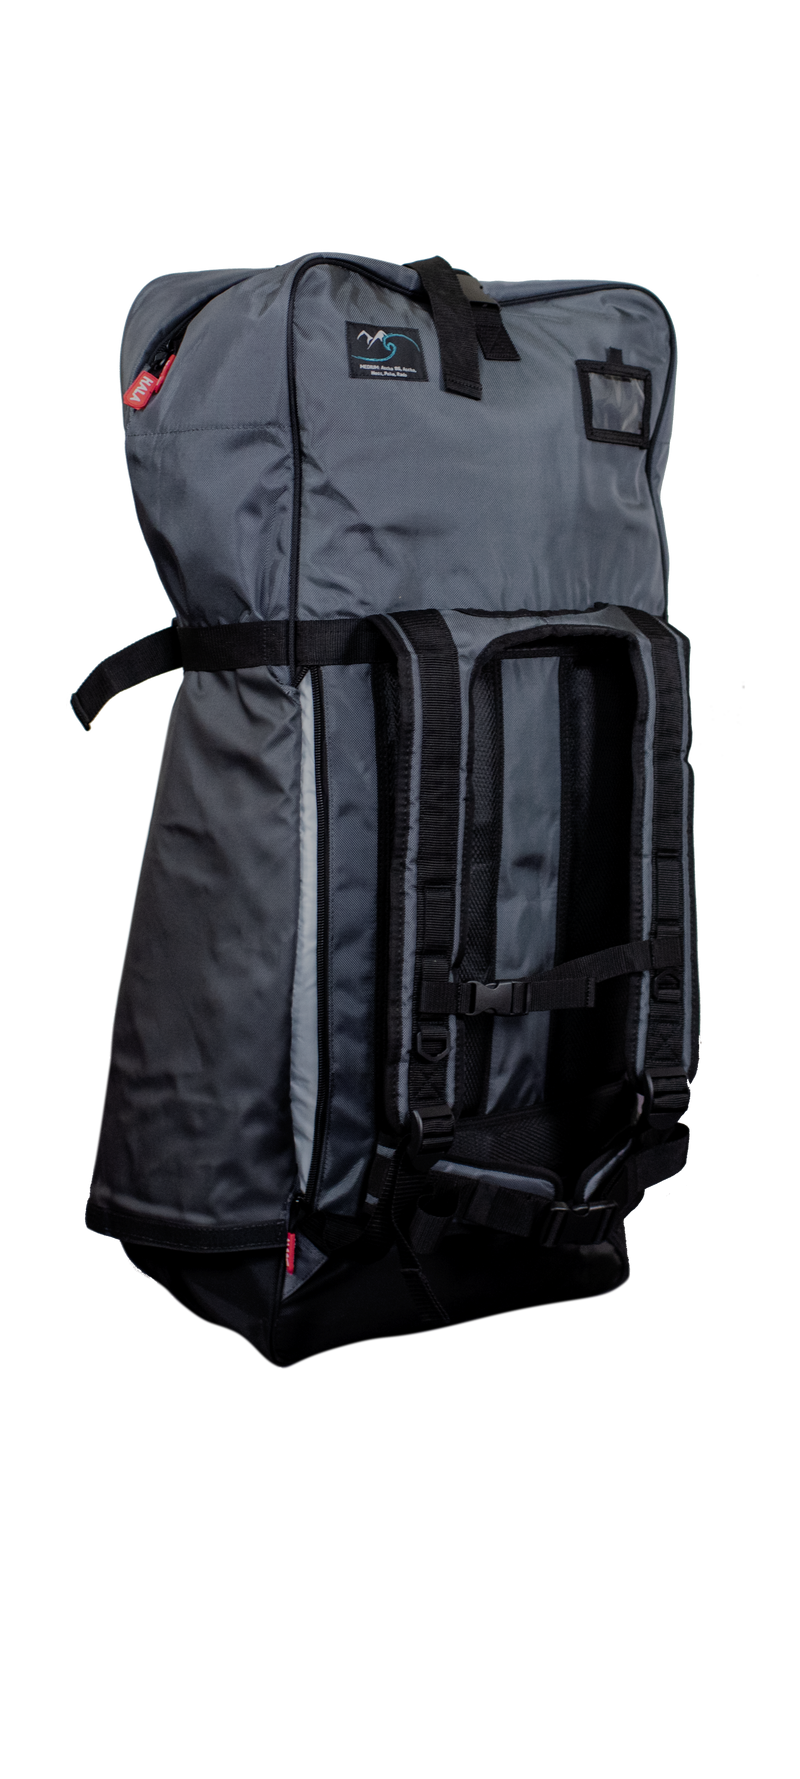 Travel-tough Rolling Backpack